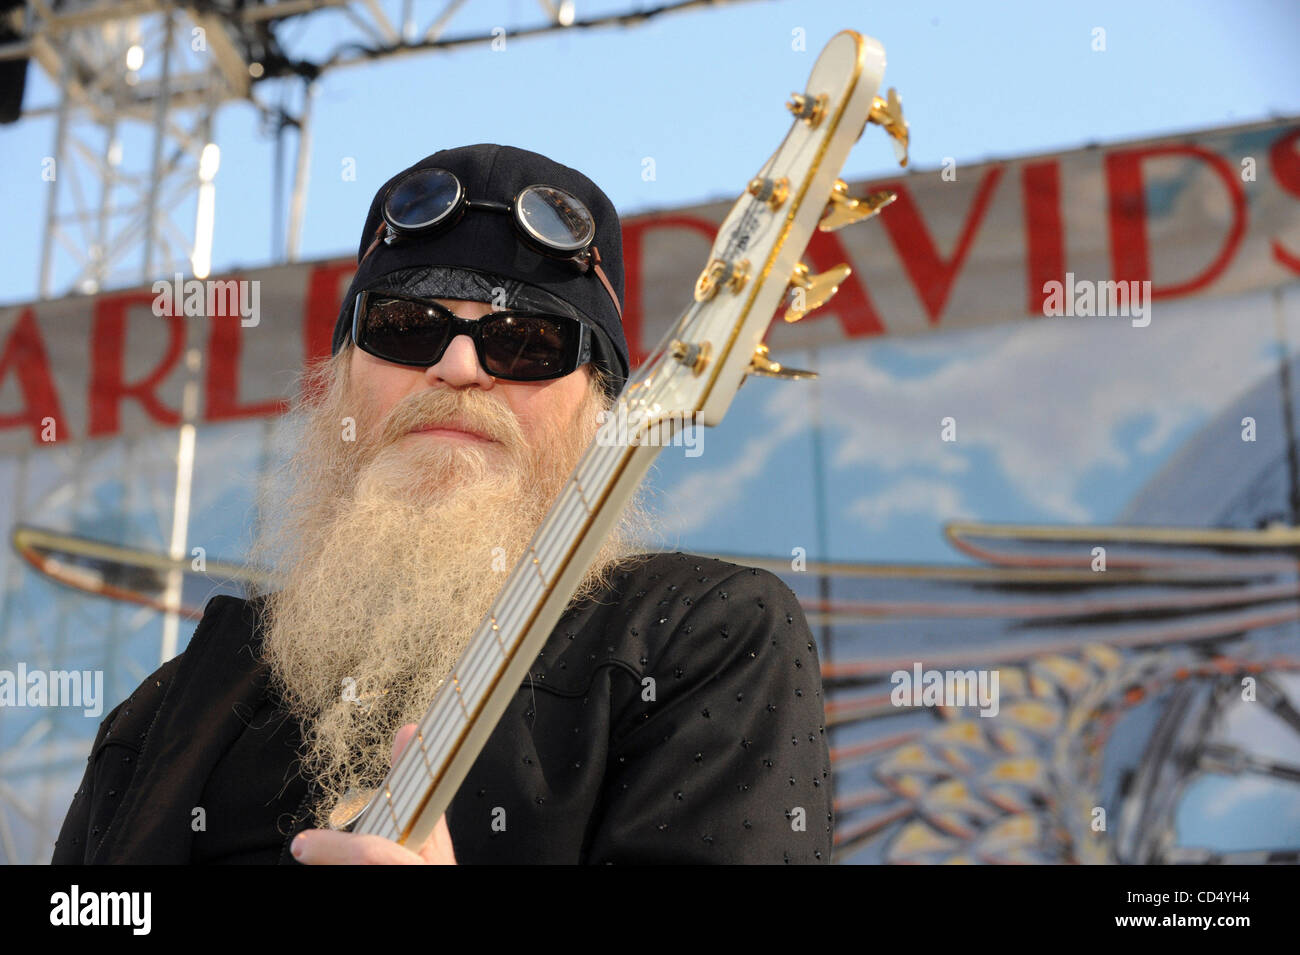 Oct 26, 2008-Pomona, California, USA-Musician DUSTY HILL of ZZ Top at Love Ride 25 held at the Pomona Fairgrounds. - Stock Image